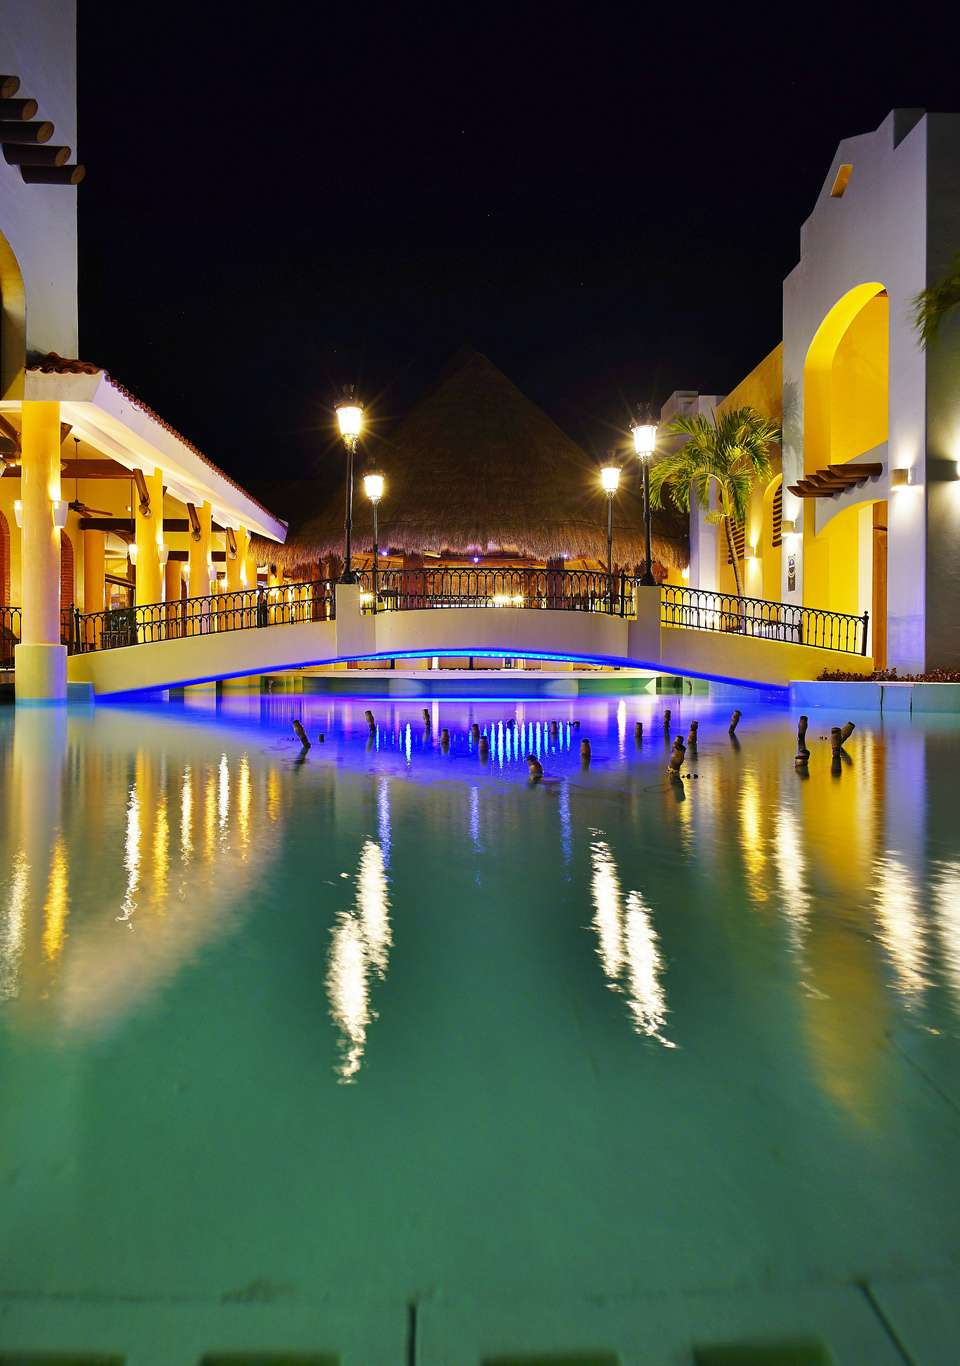 Residence buildings and a pool at the Iberostar Paraiso Lindo on the Riviera Maya.